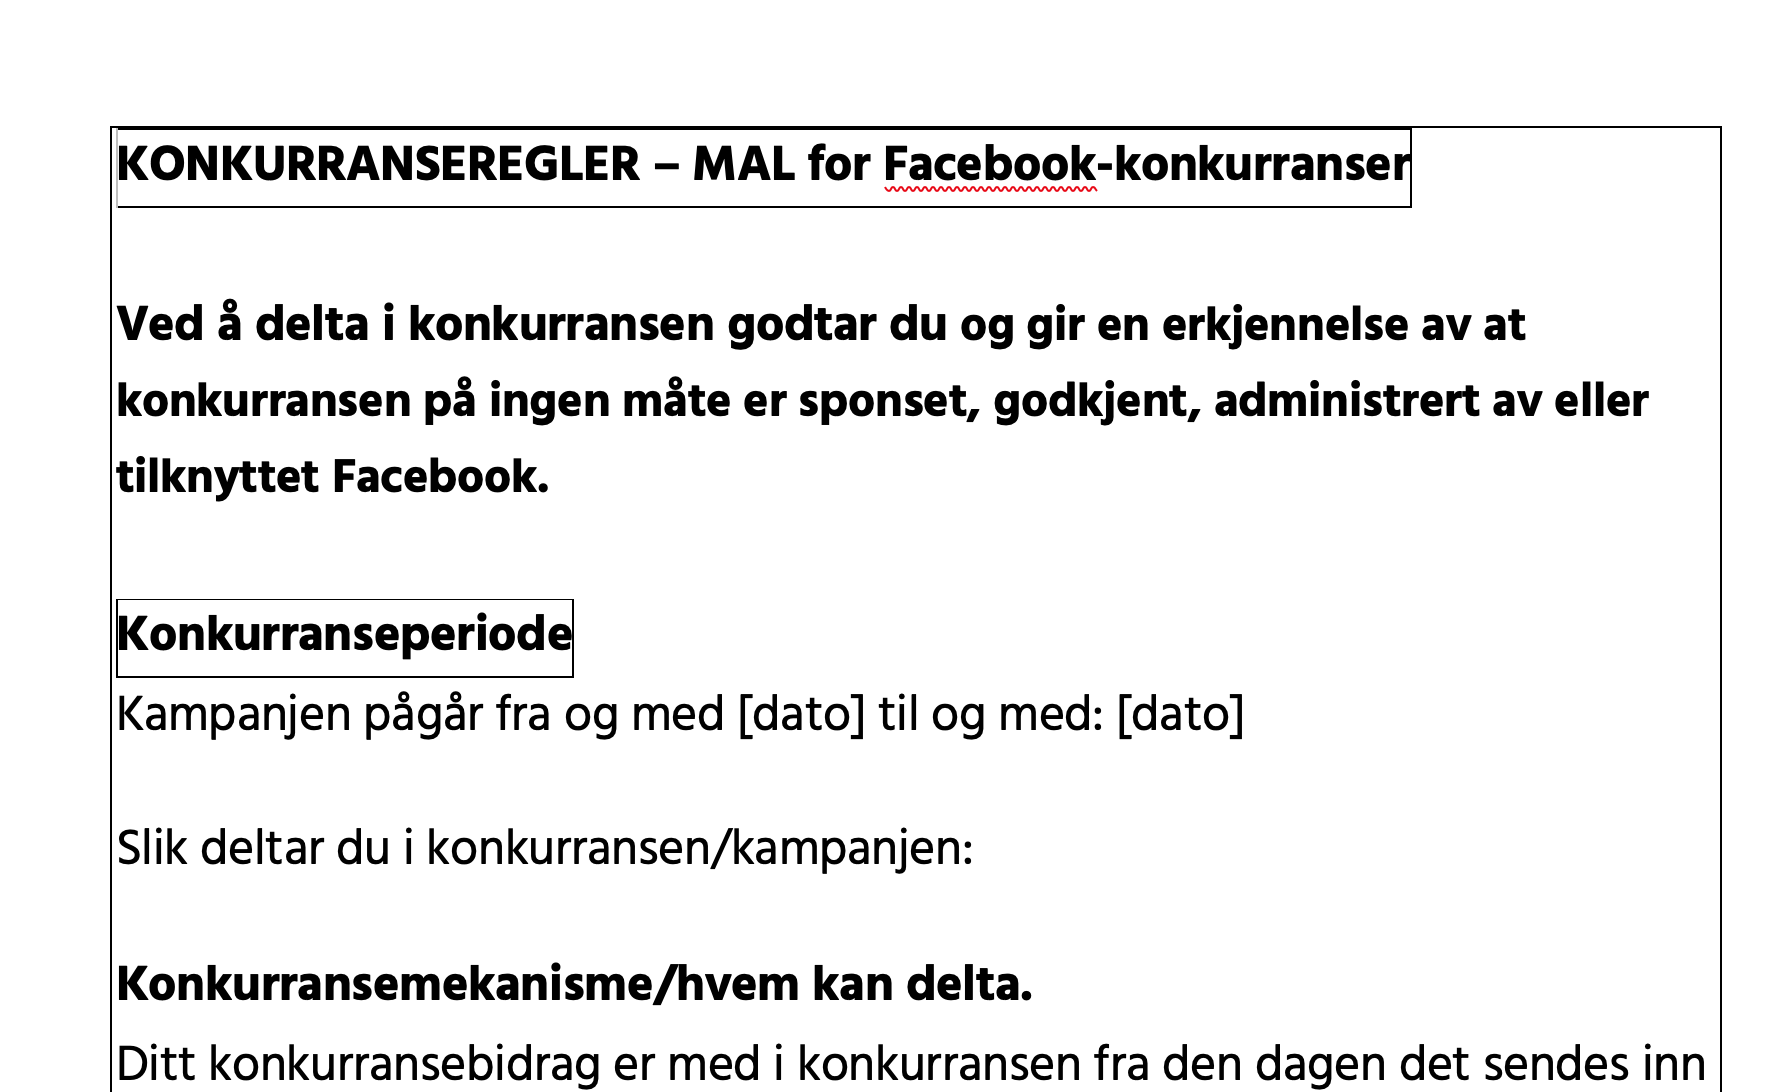 Trykk her for å laste ned mal for Facebookkonkurranser. (Word dokument)